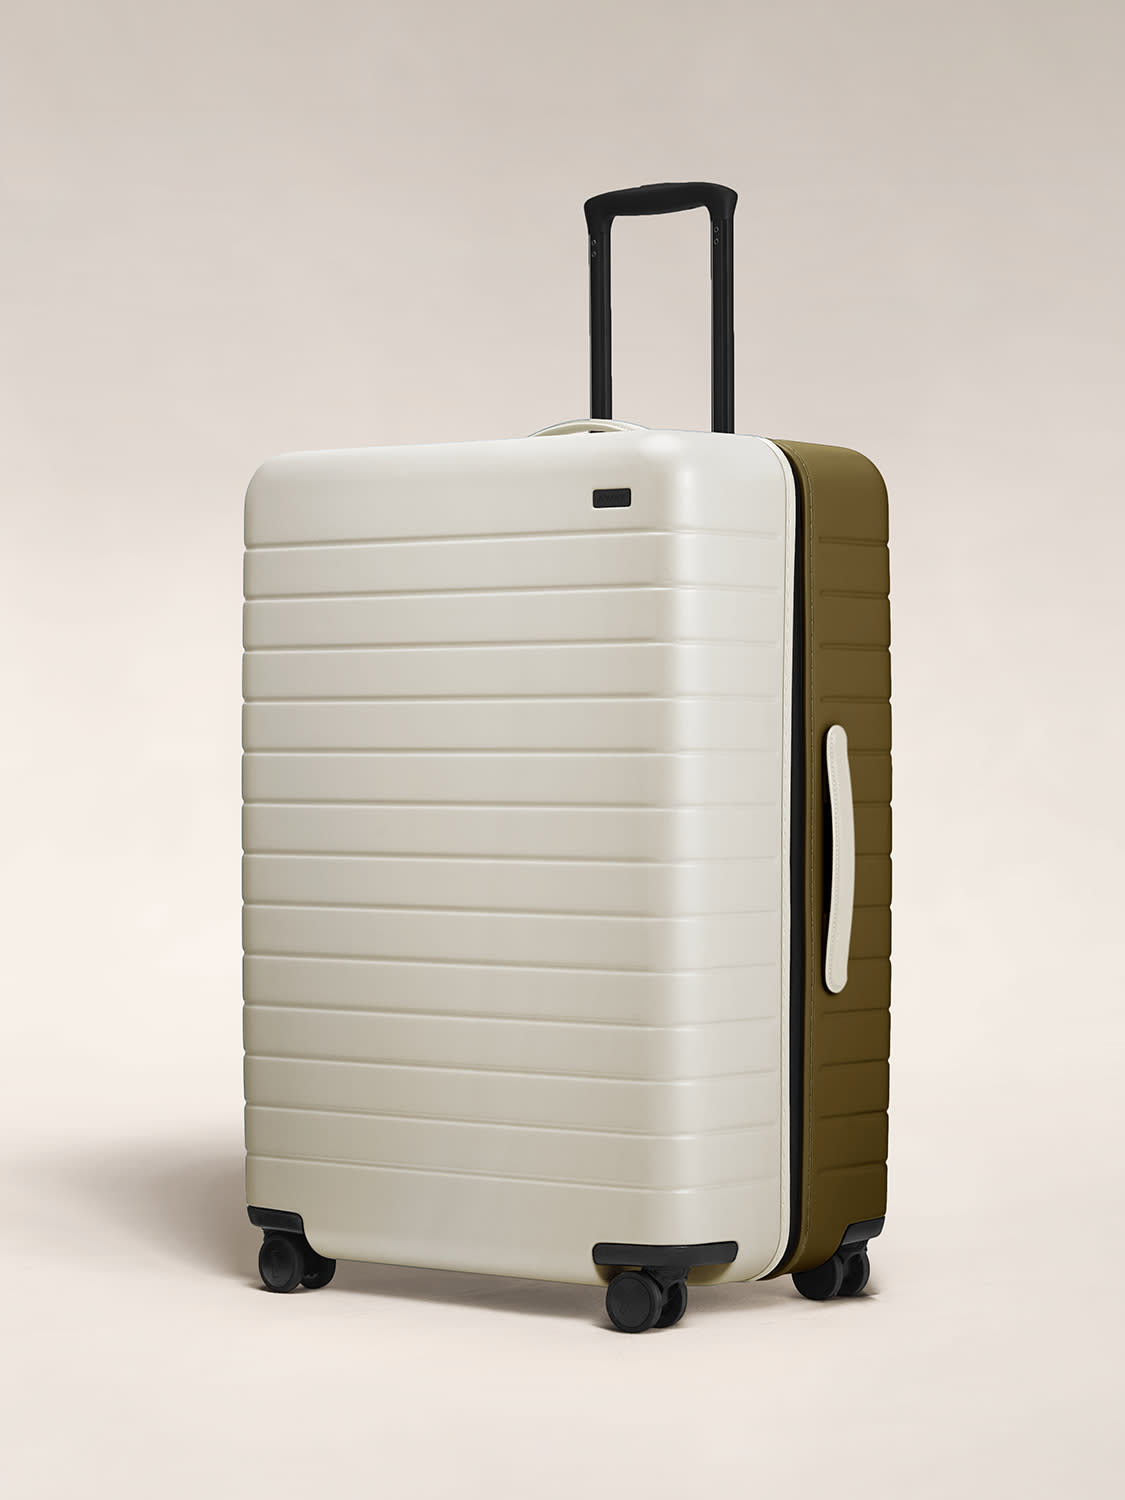 Angled view of the Large hardside suitcase in Beige/Olive